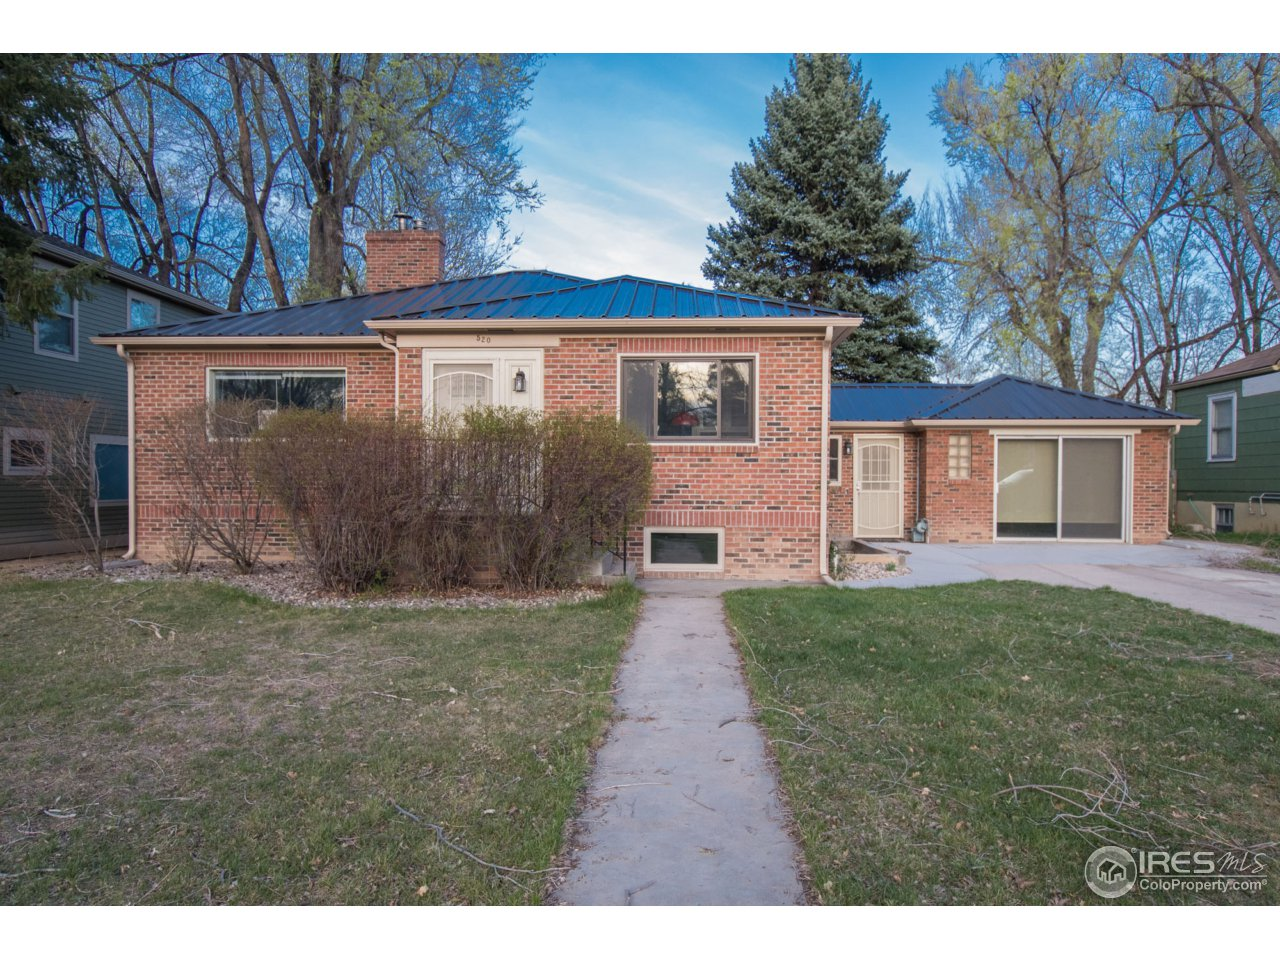 520 S Grant Ave, Fort Collins CO 80521